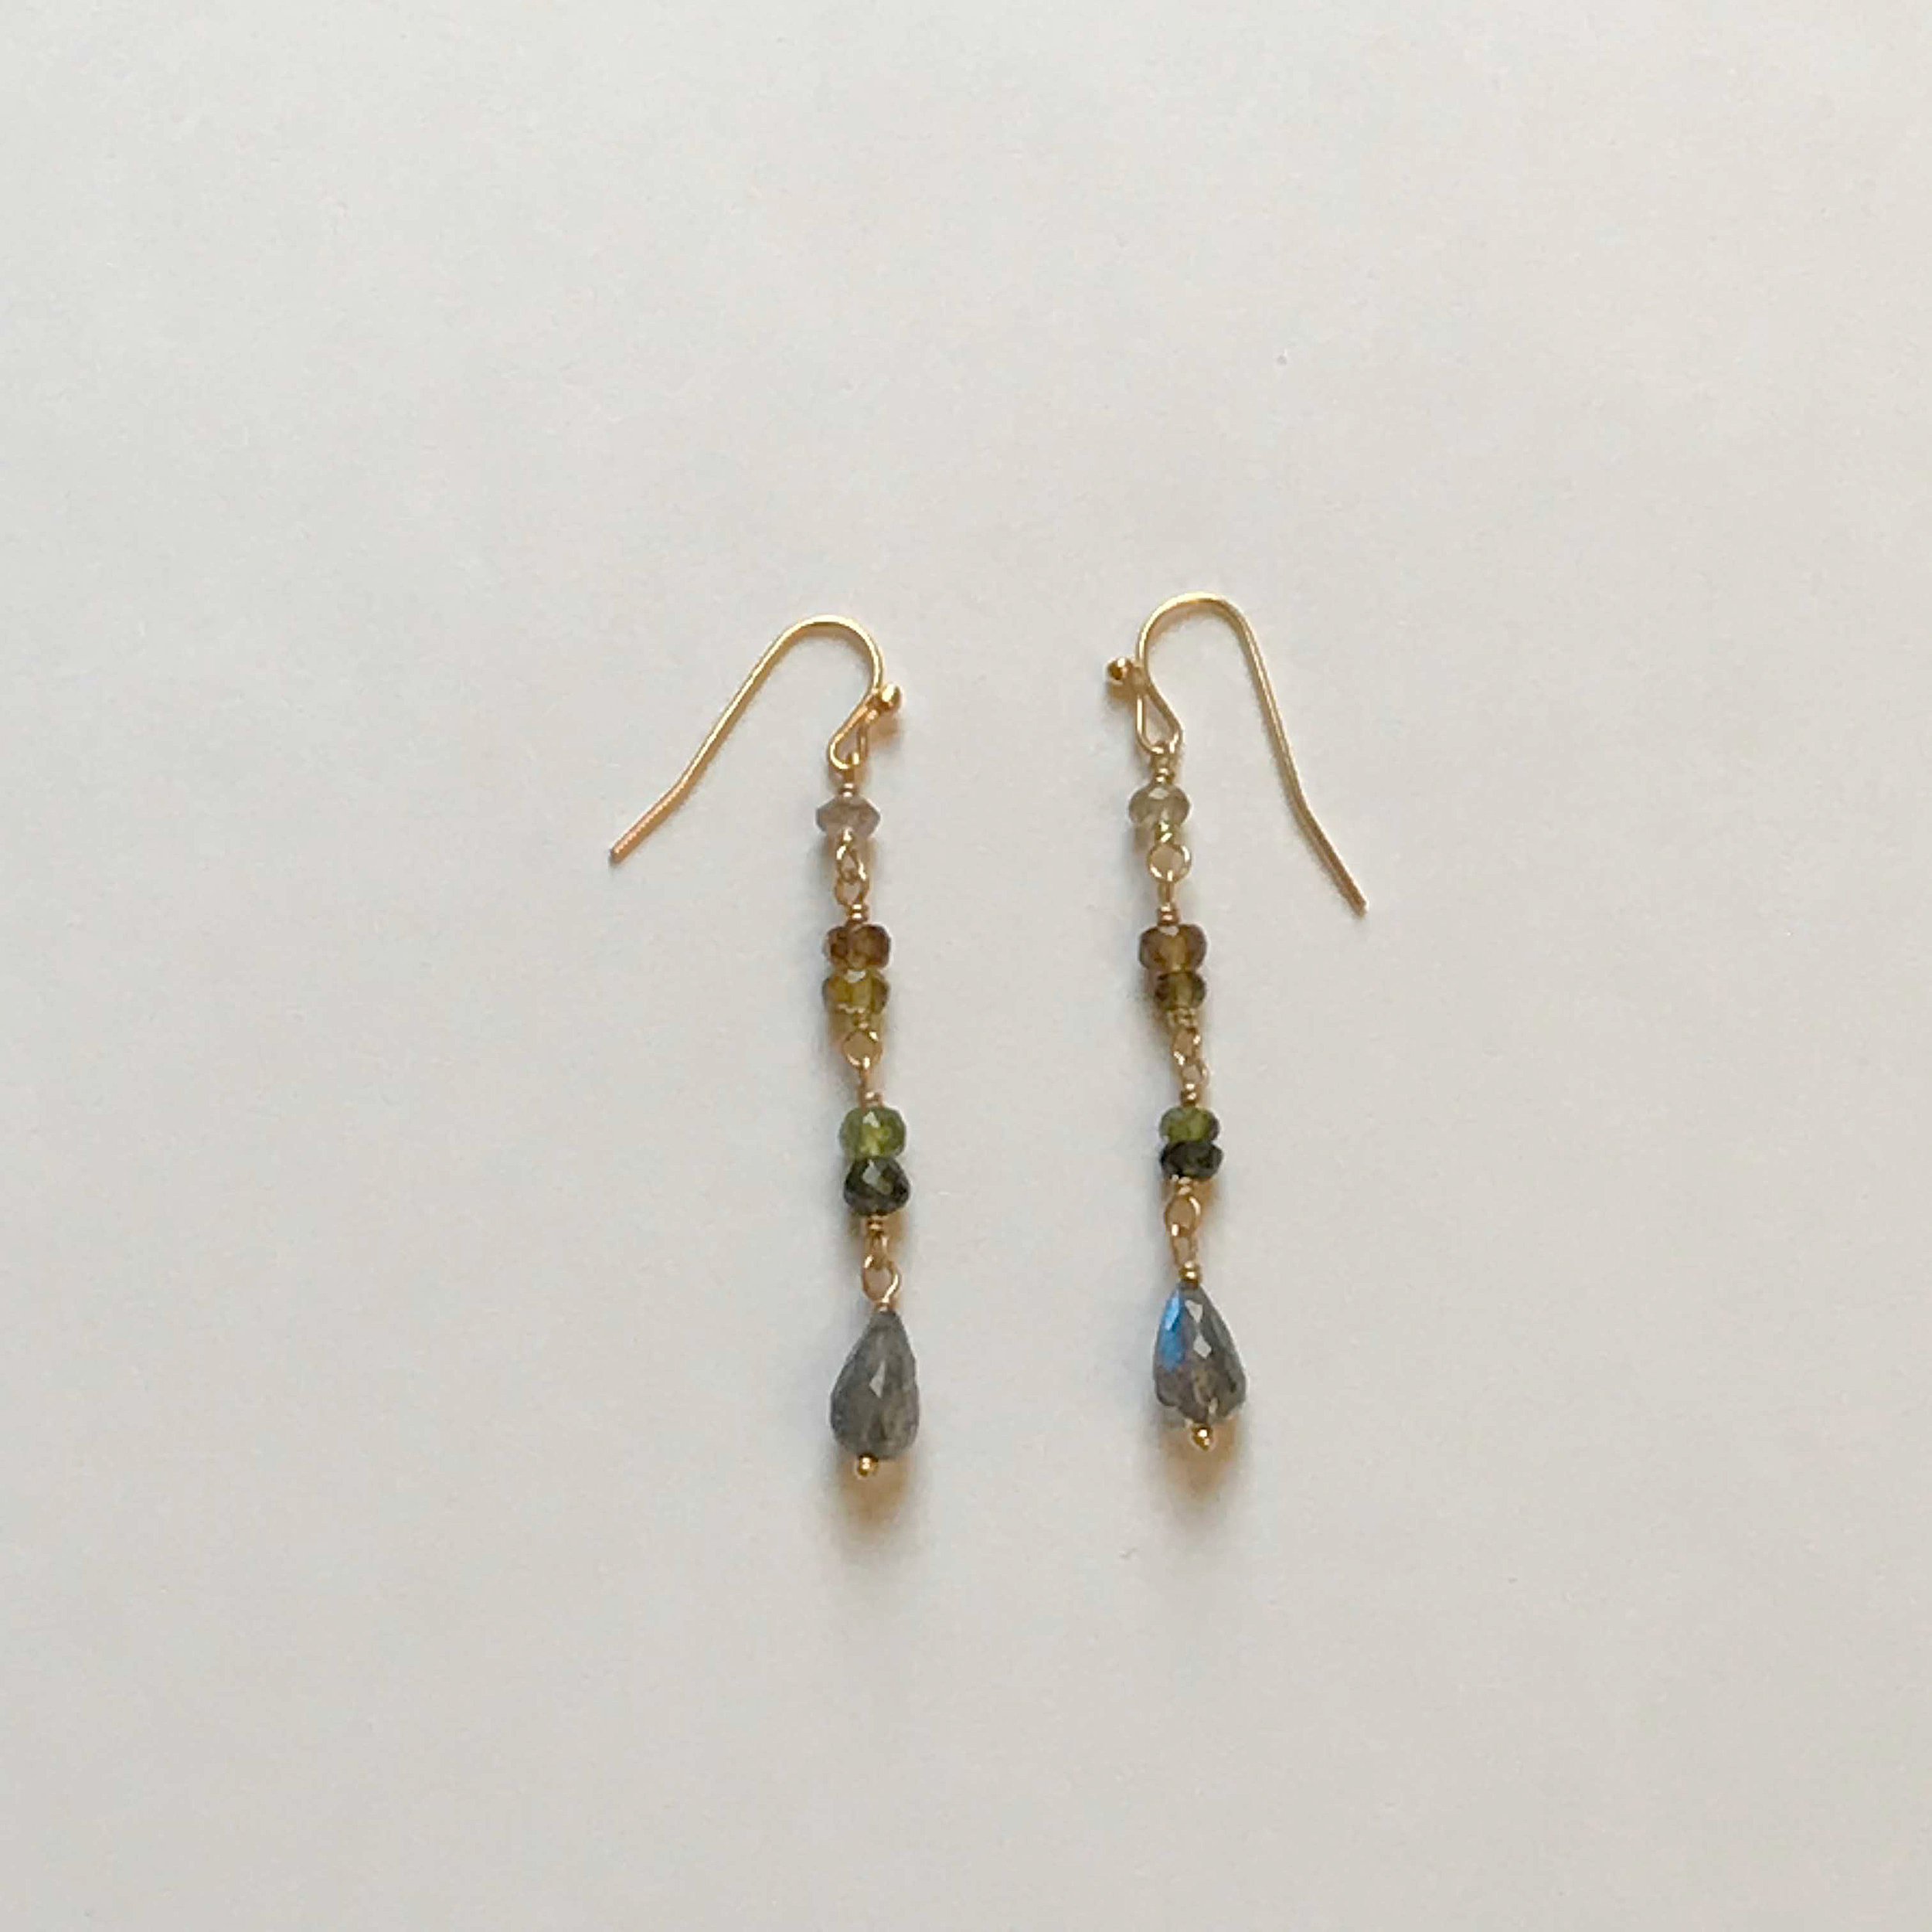 $135 Gold Filled Labradorite Tourmaline Earrings